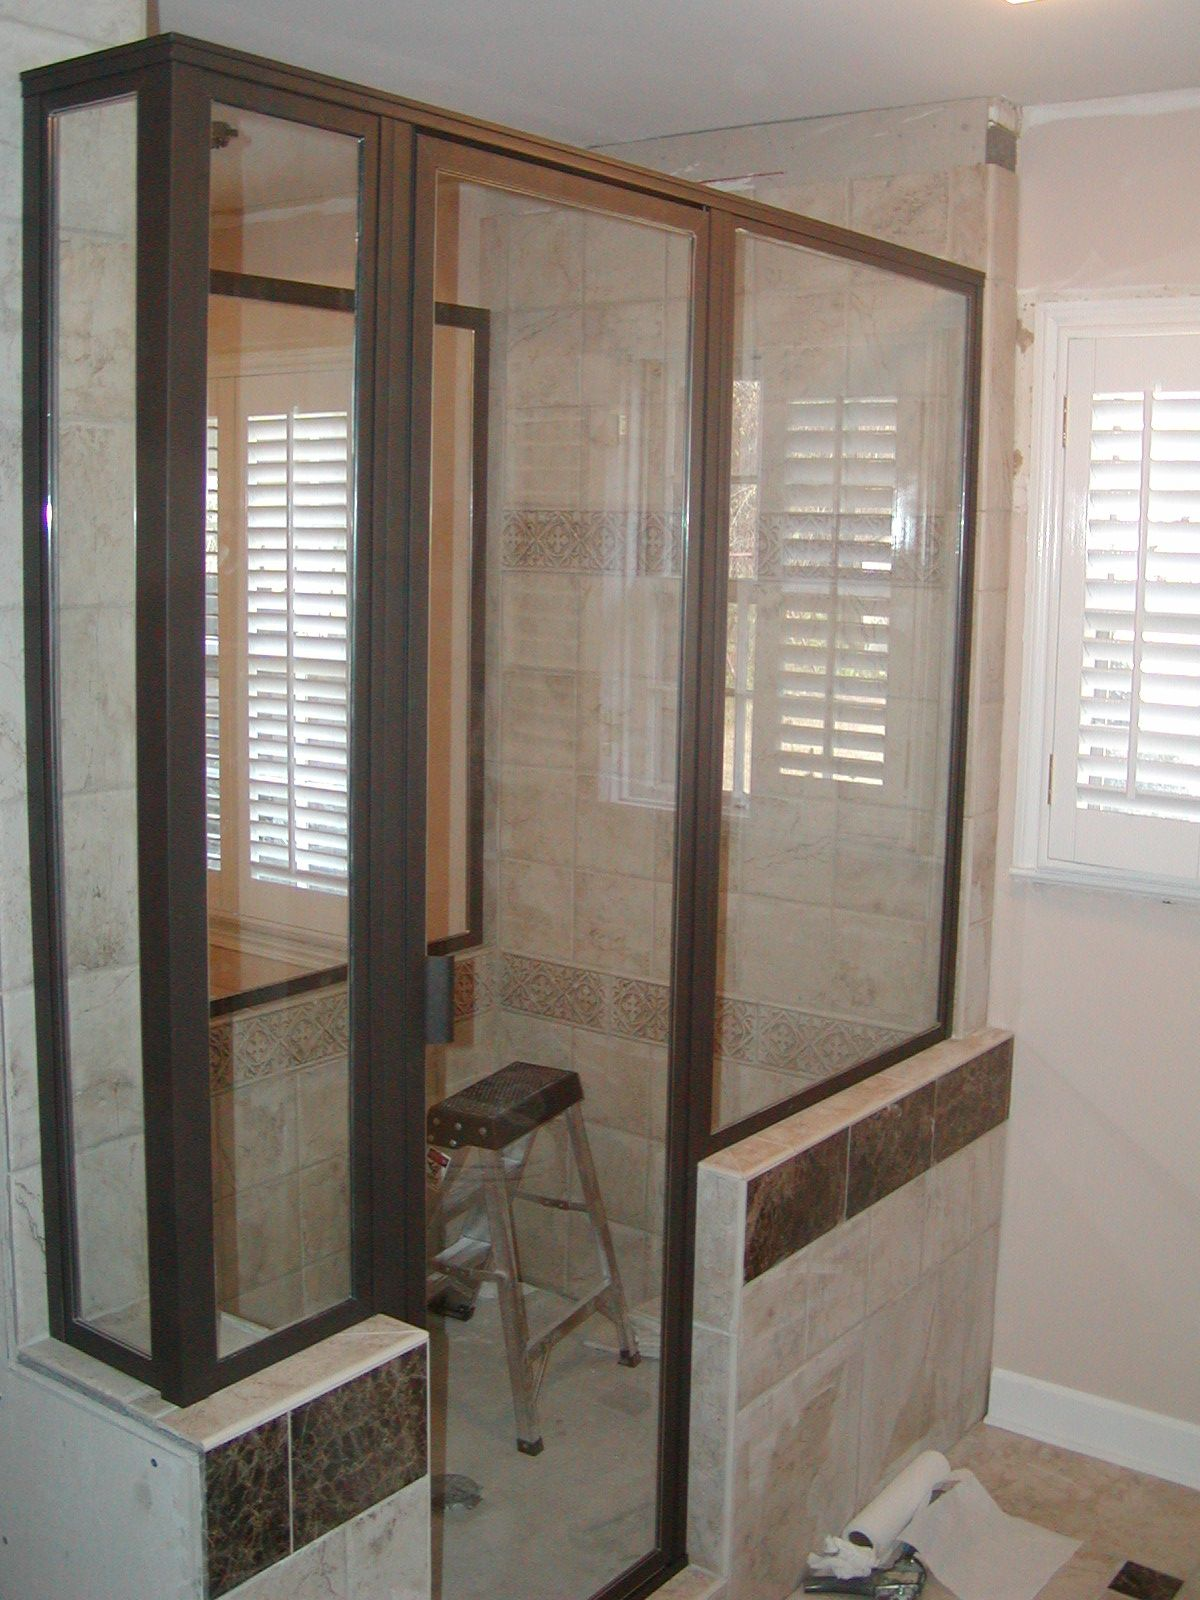 Framed Swing Door With In Line Panel With Step Up 2 Additional In Line Panels With Step Ups And 2 End Retur Framed Shower Door Shower Doors Framed Shower